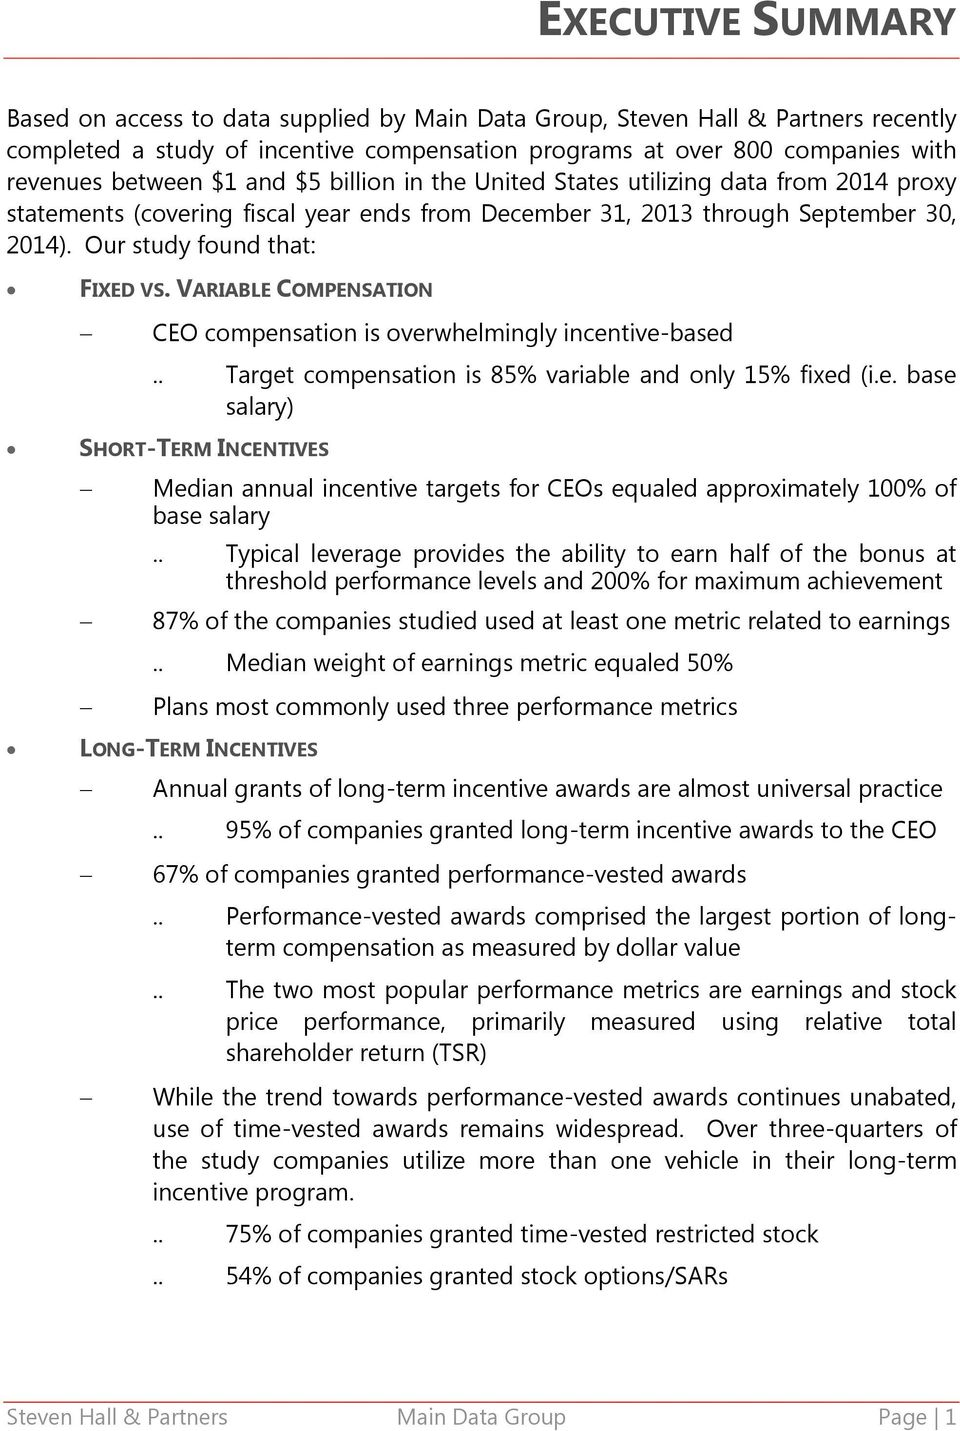 VARIABLE COMPENSATION CEO compensation is overwhelmingly incentive-based.. Target compensation is 85% variable and only 15% fixed (i.e. base salary) SHORT-TERM INCENTIVES Median annual incentive targets for CEOs equaled approximately 100% of base salary.